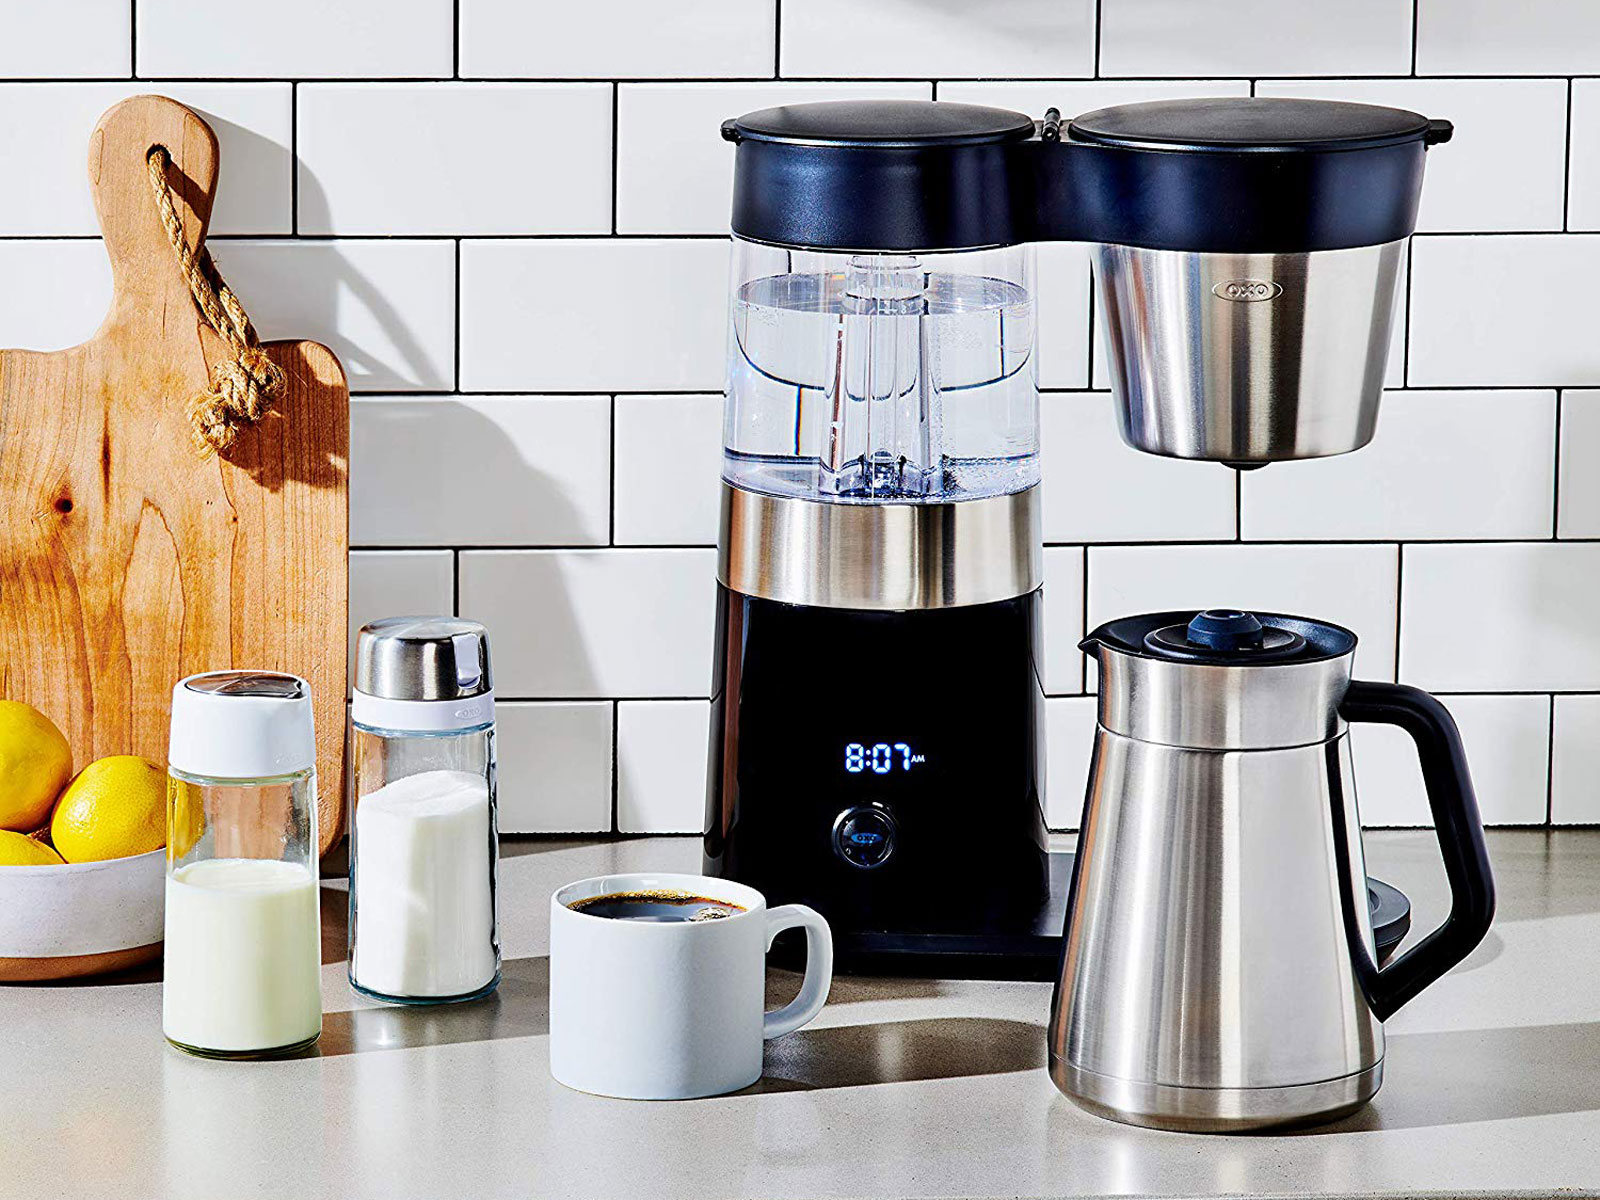 oxo coffee maker prime day 2019